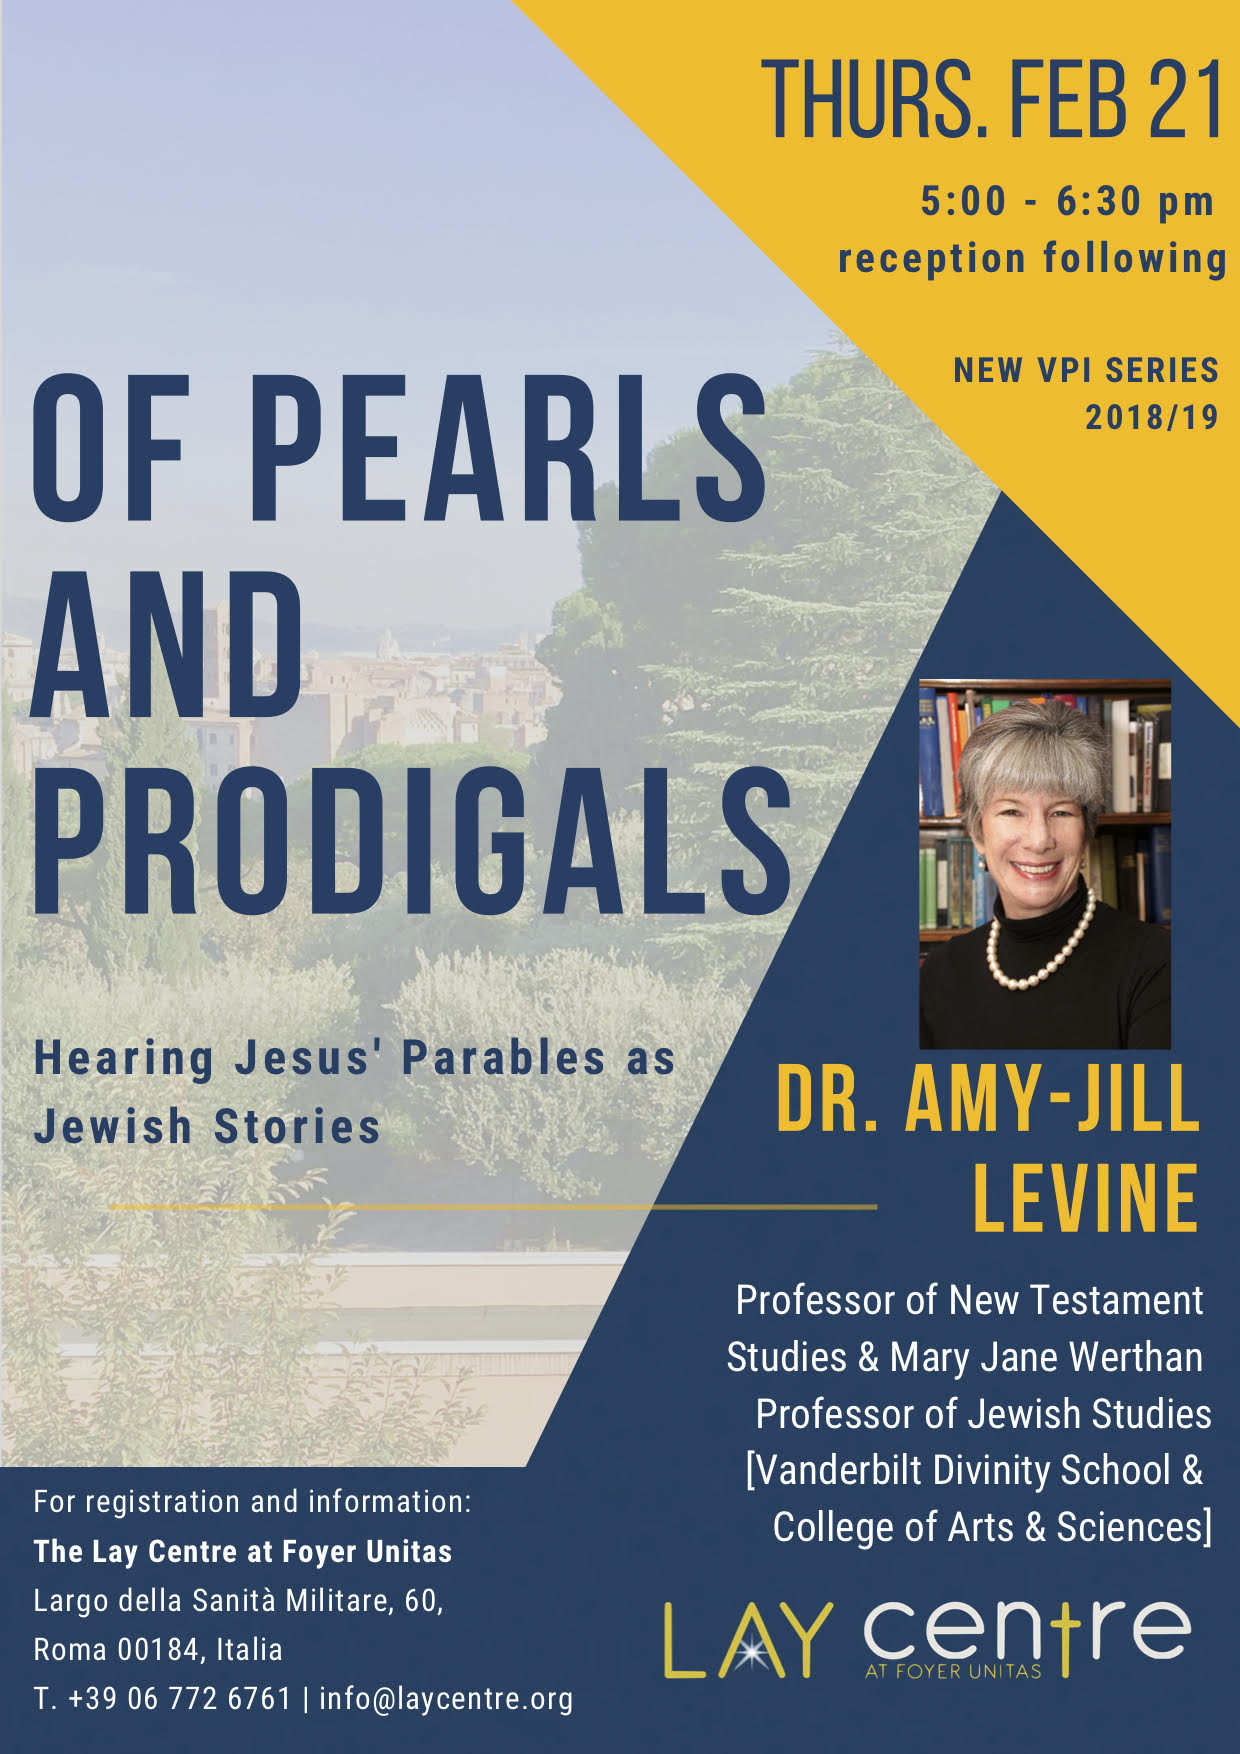 Of Pearls and Prodigals: Hearing Jesus' Parables as Jewish Stories